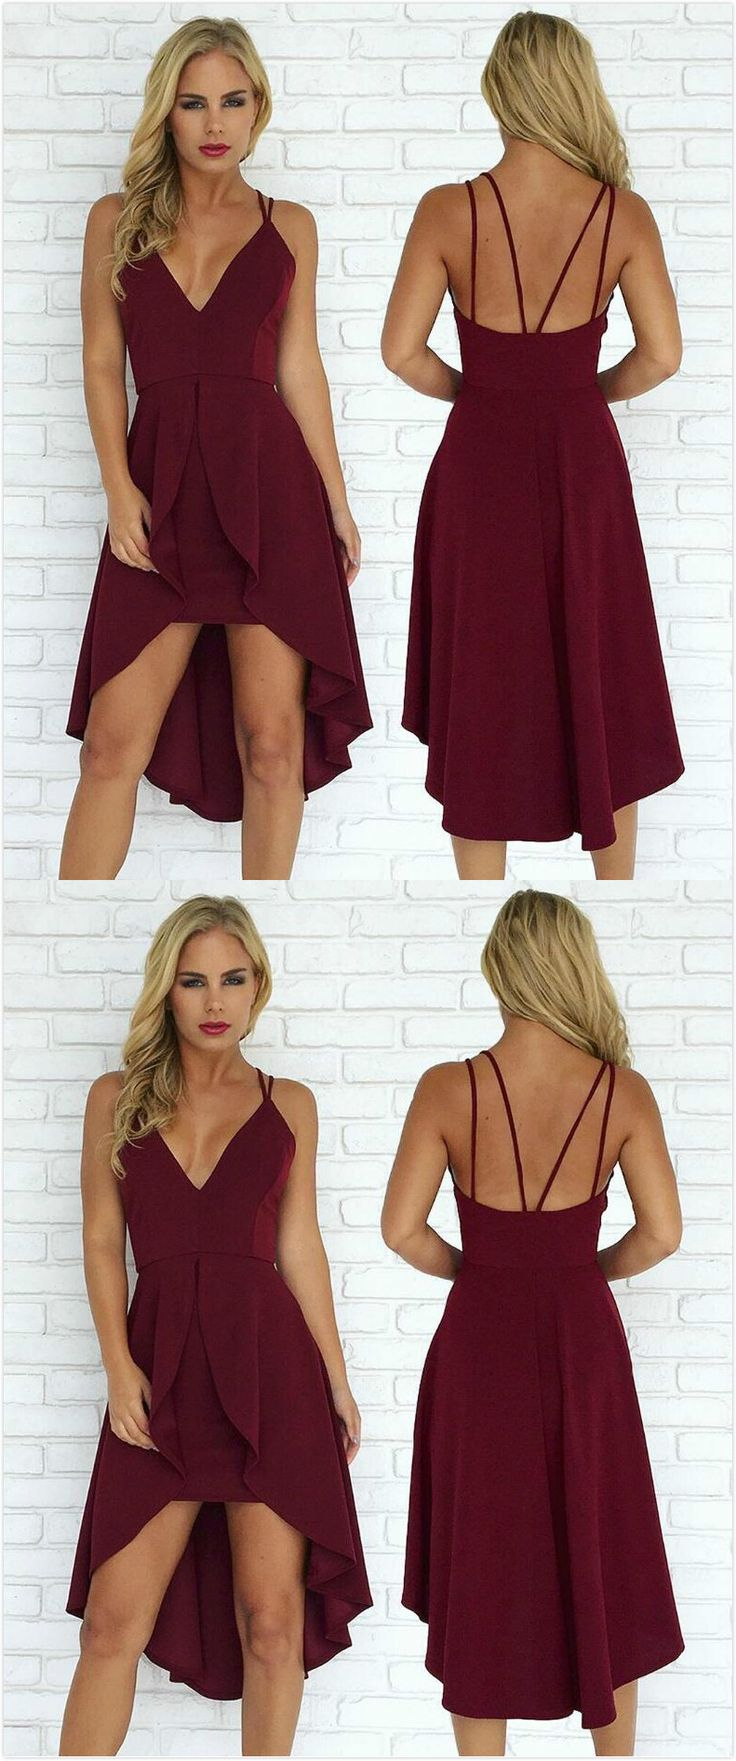 Burgundy Prom Dress,Sexy Straps Prom Dress, V Neck Prom Dress,Stain Prom Dress,Short Prom Dress,Sexy Homecoming Dress